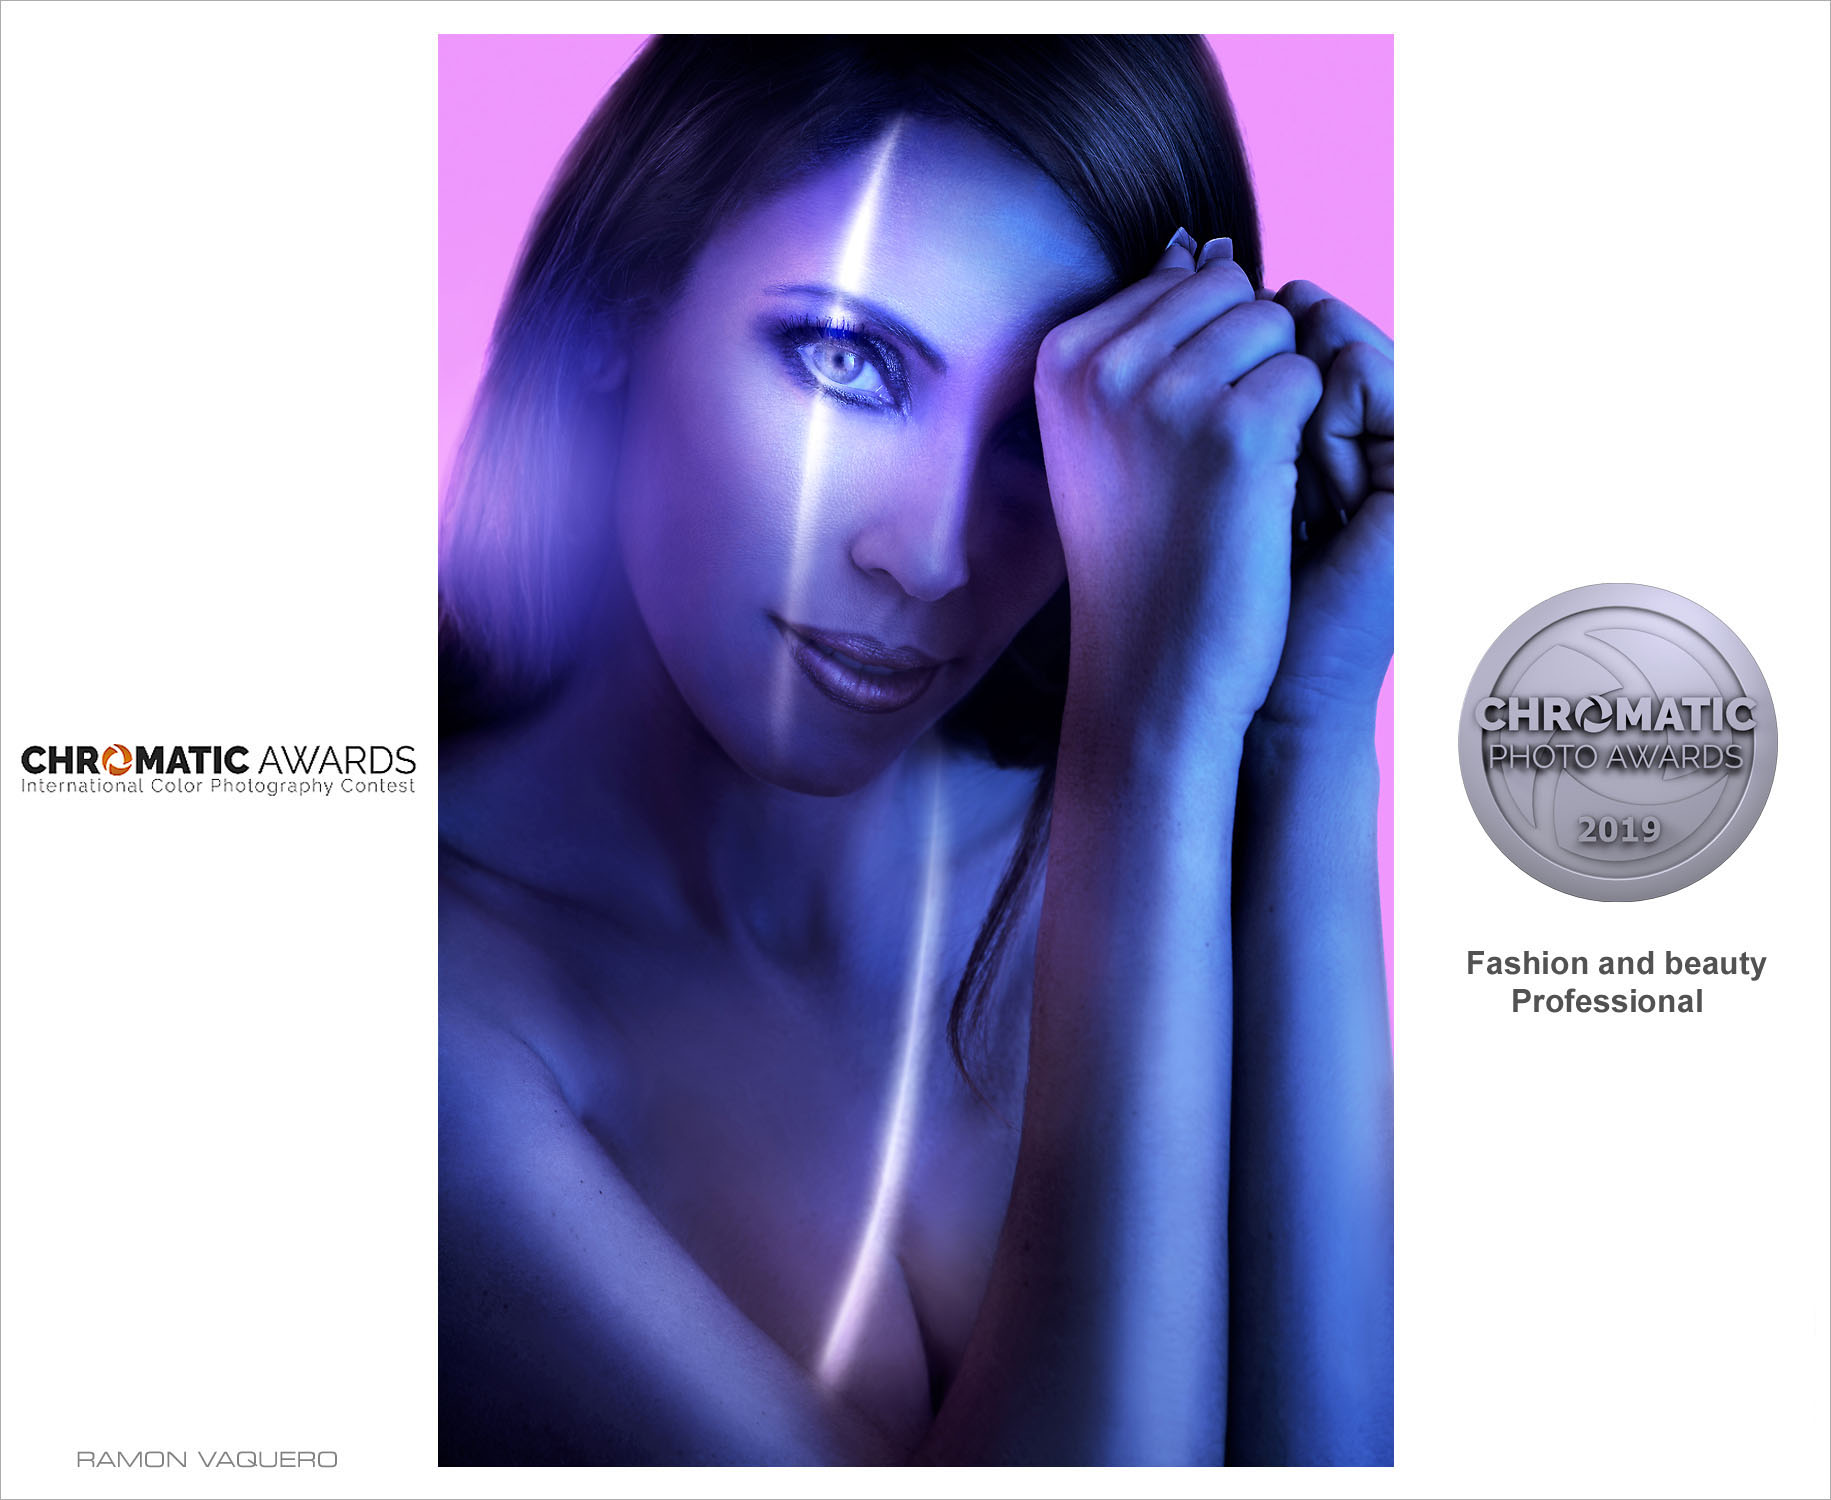 lighting-beauty_ramon vaquero_chromaticawards_2019_beauty_fashion